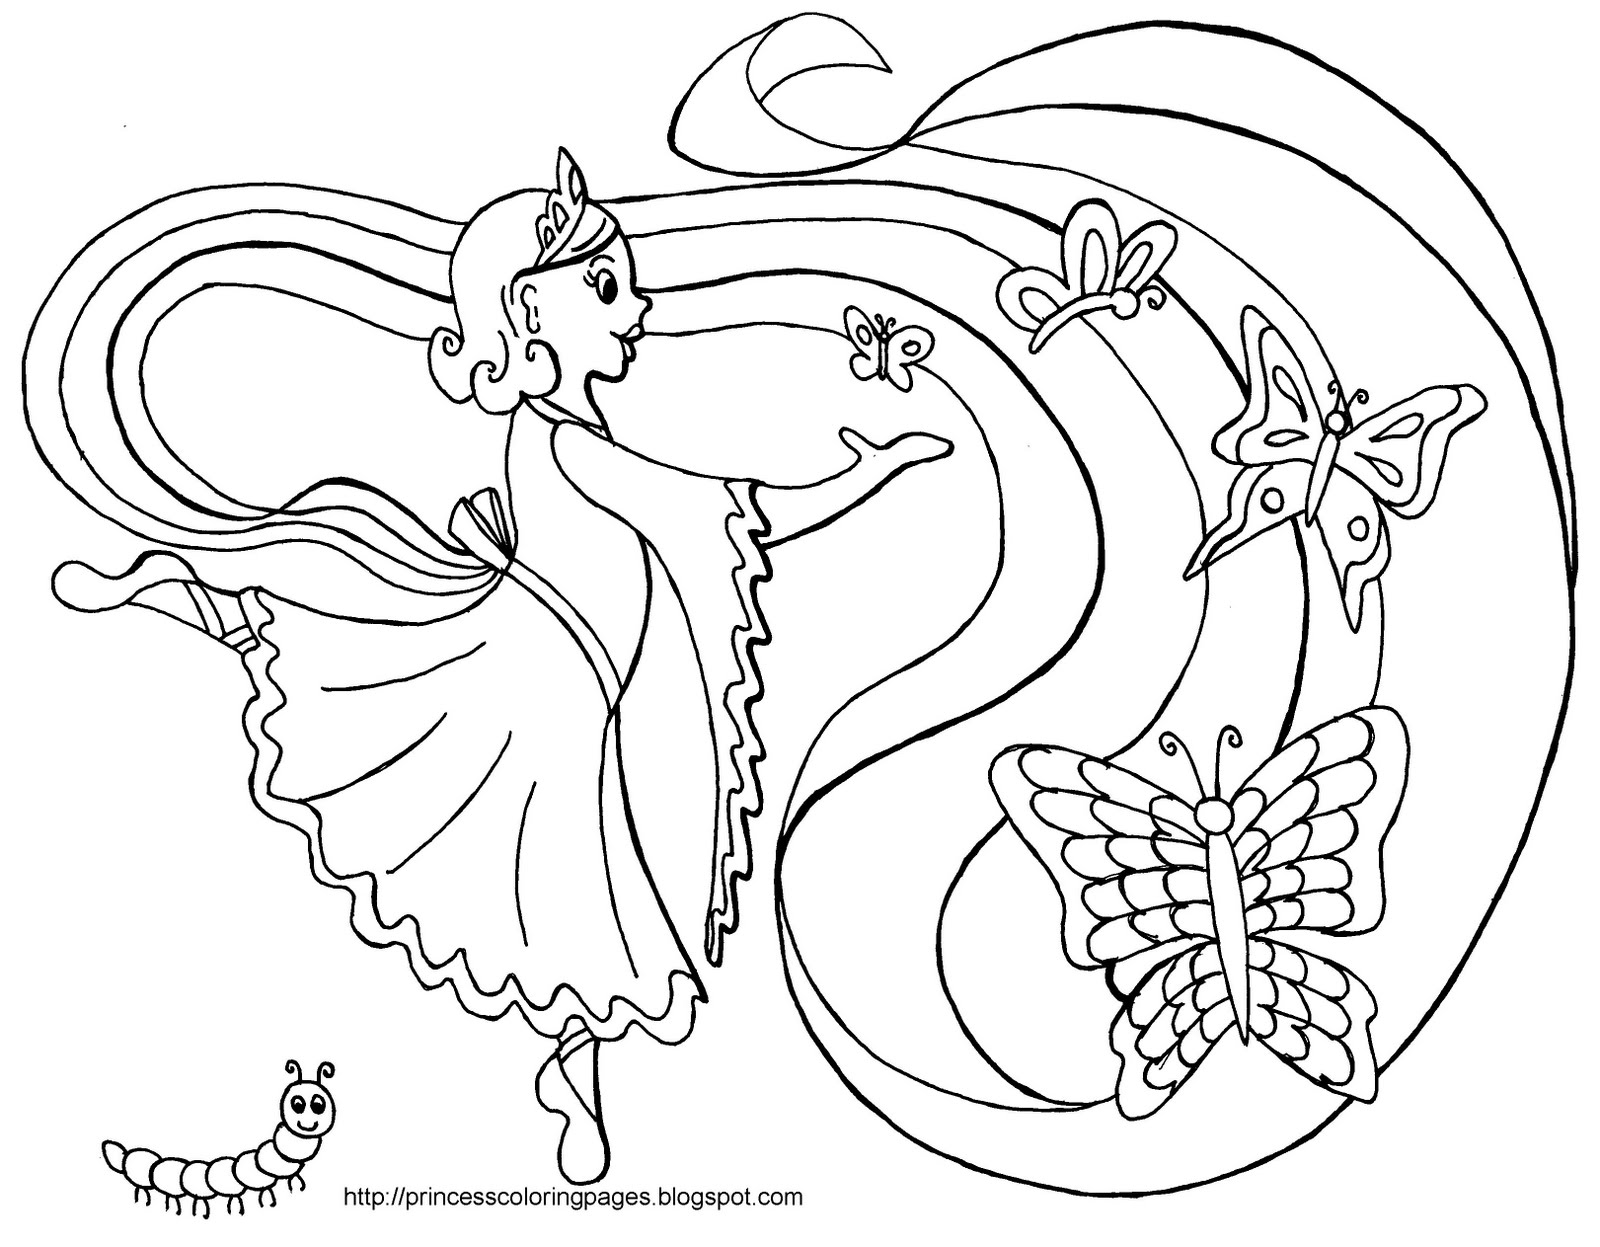 Princess Coloring Pages To Print